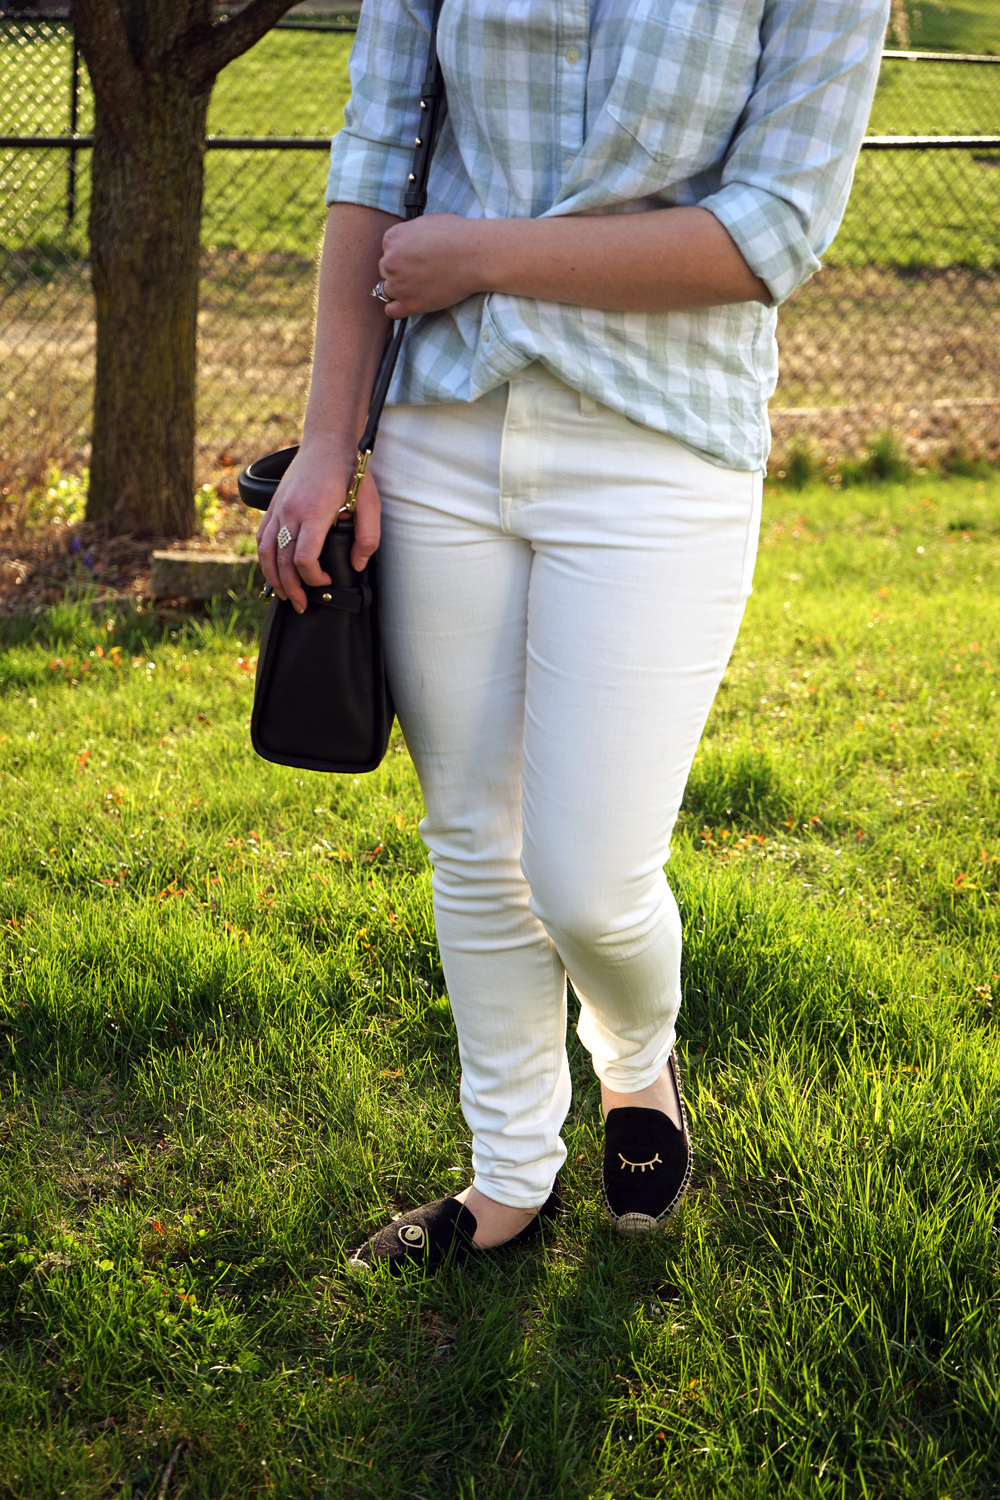 Soludos x Jason Polan winking eye espadrille flats, Madewell skinny jeans (pure white), Gap flannel shirt, Luana Italy paley satchel purse - Maggie a la Mode